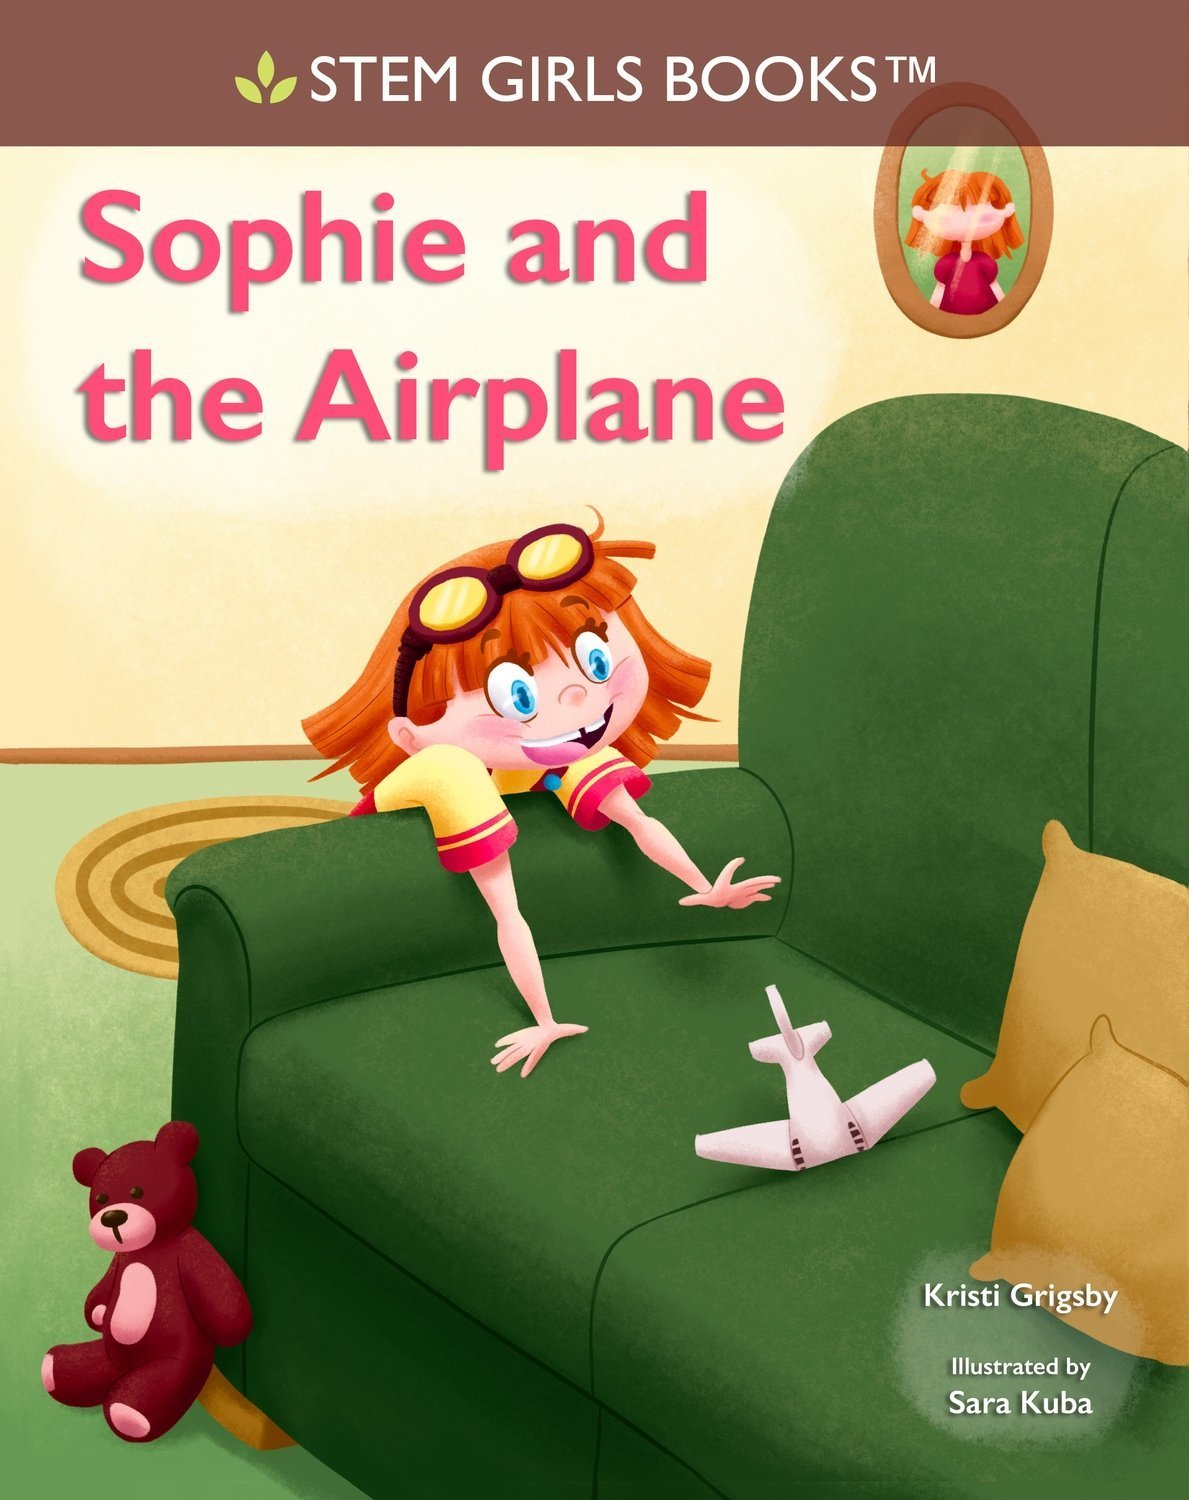 Sophie and the Airplane - Children's Inspirational/Motivational